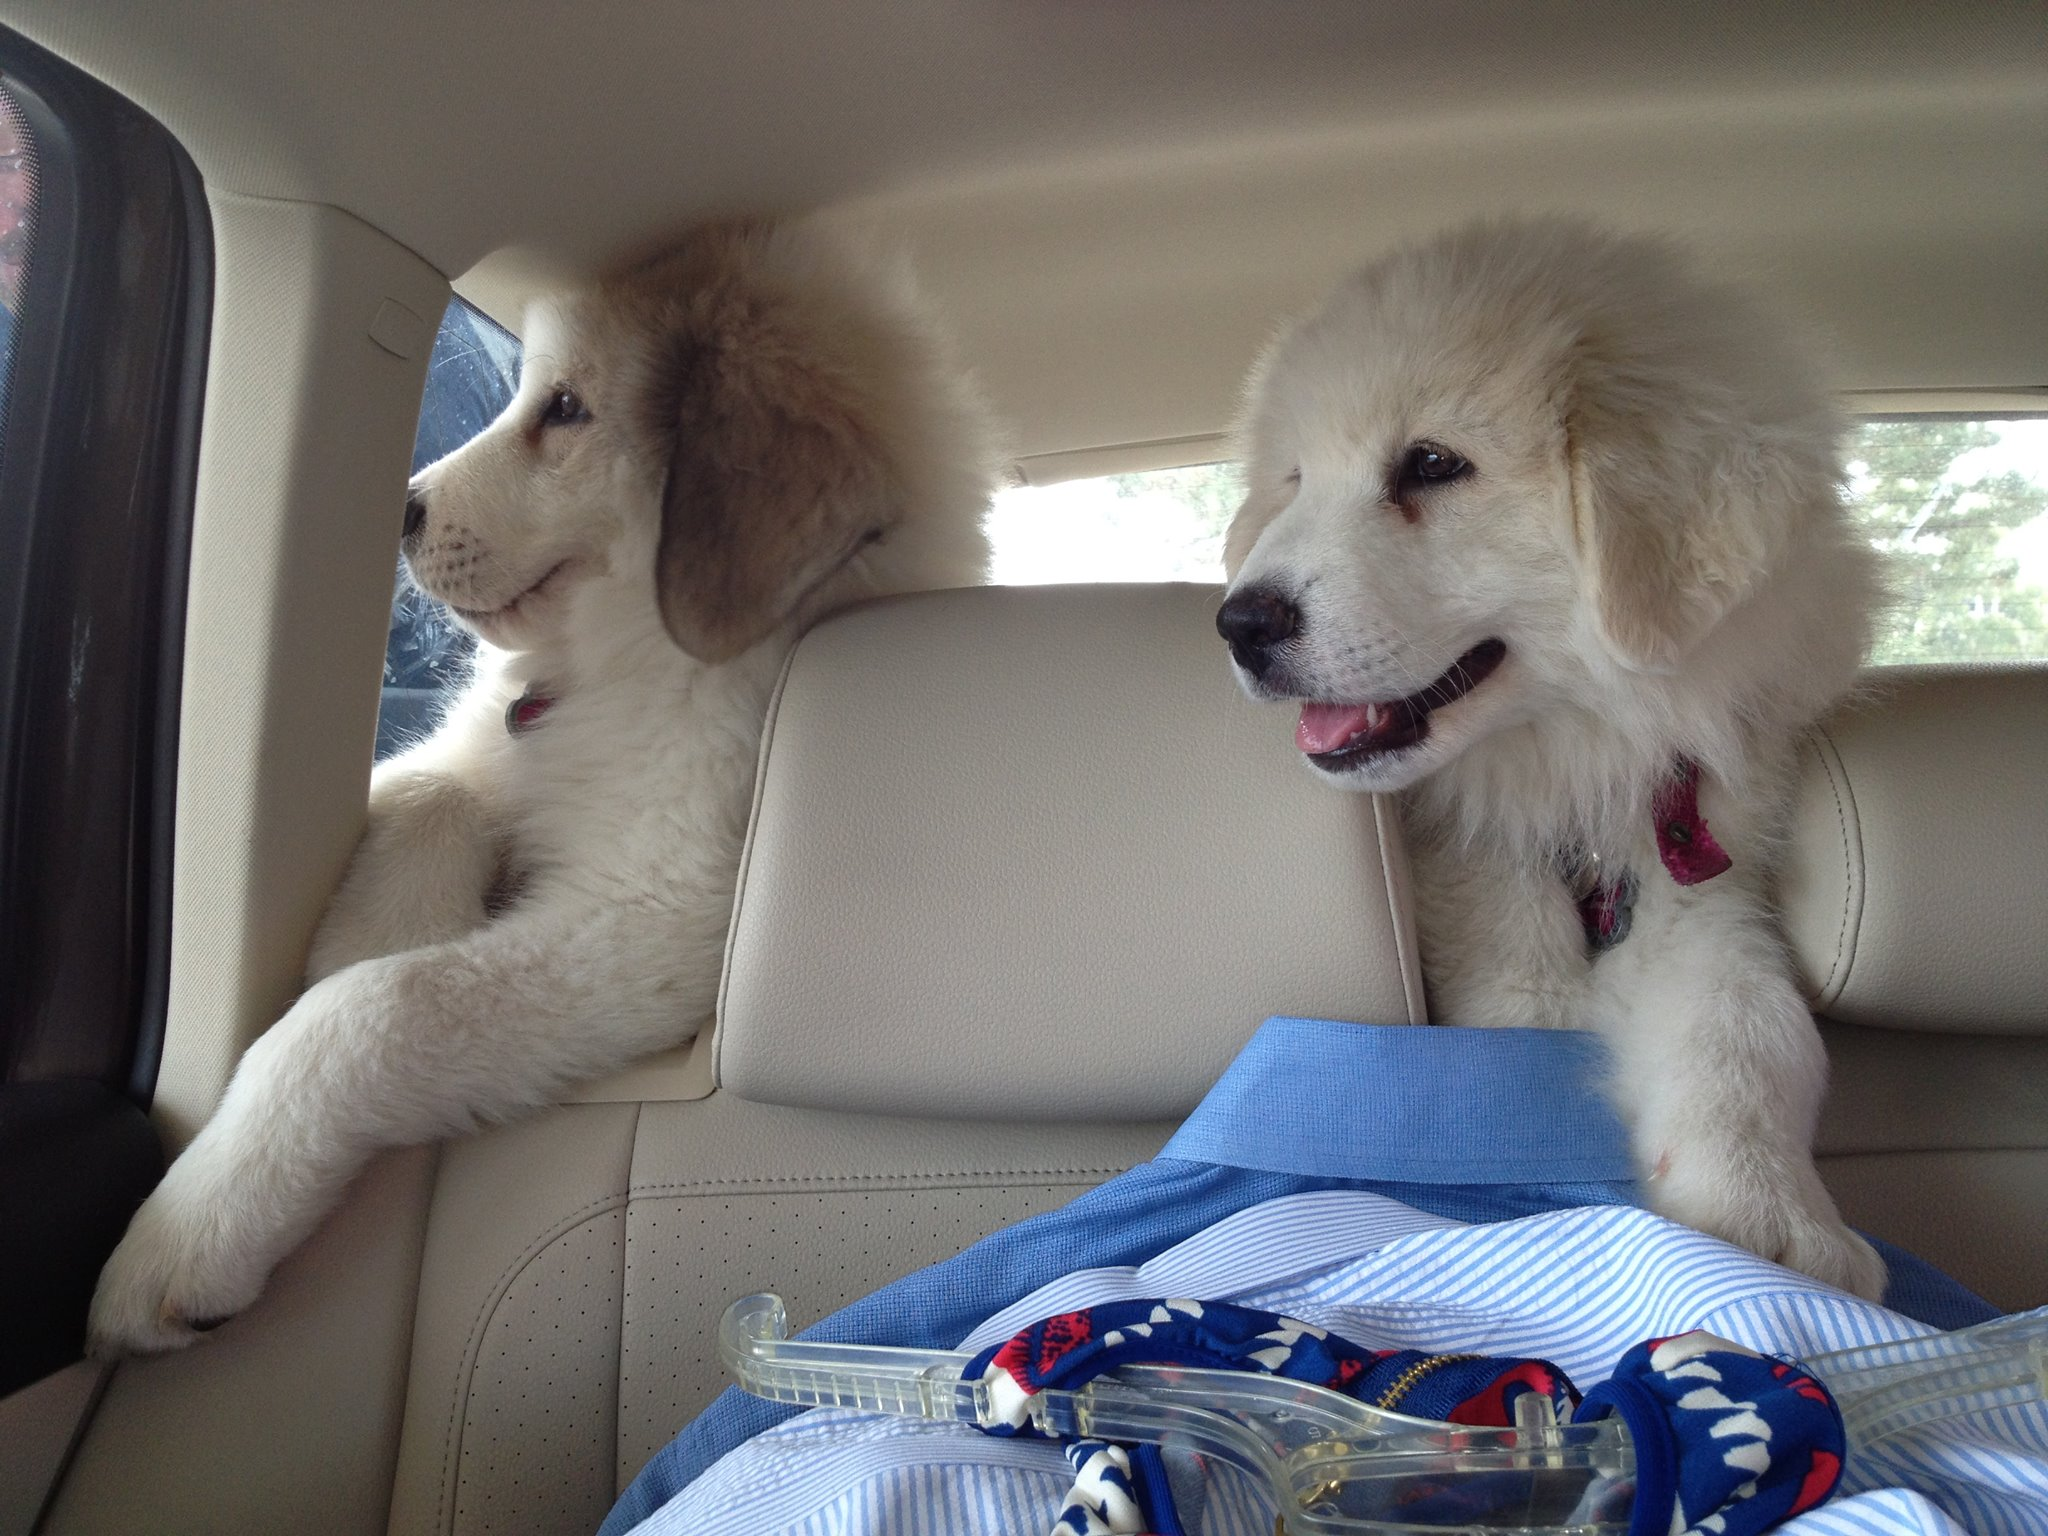 Dogs in Cars - Brent Burmaster